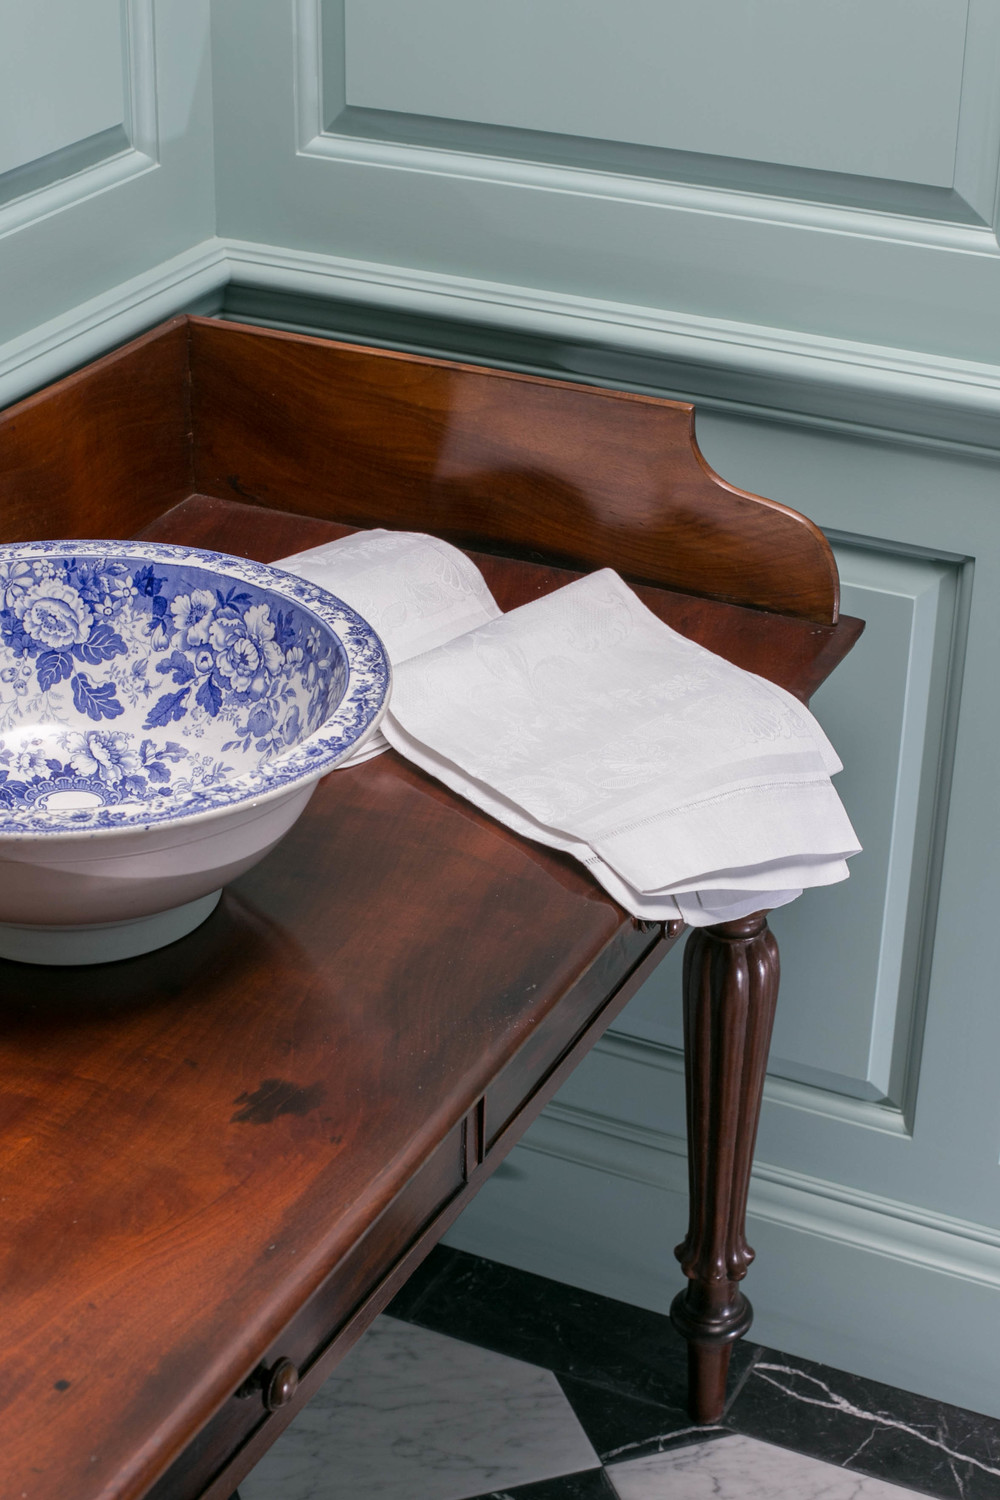 Antique mahogany washstand with an Antique blue and white basin